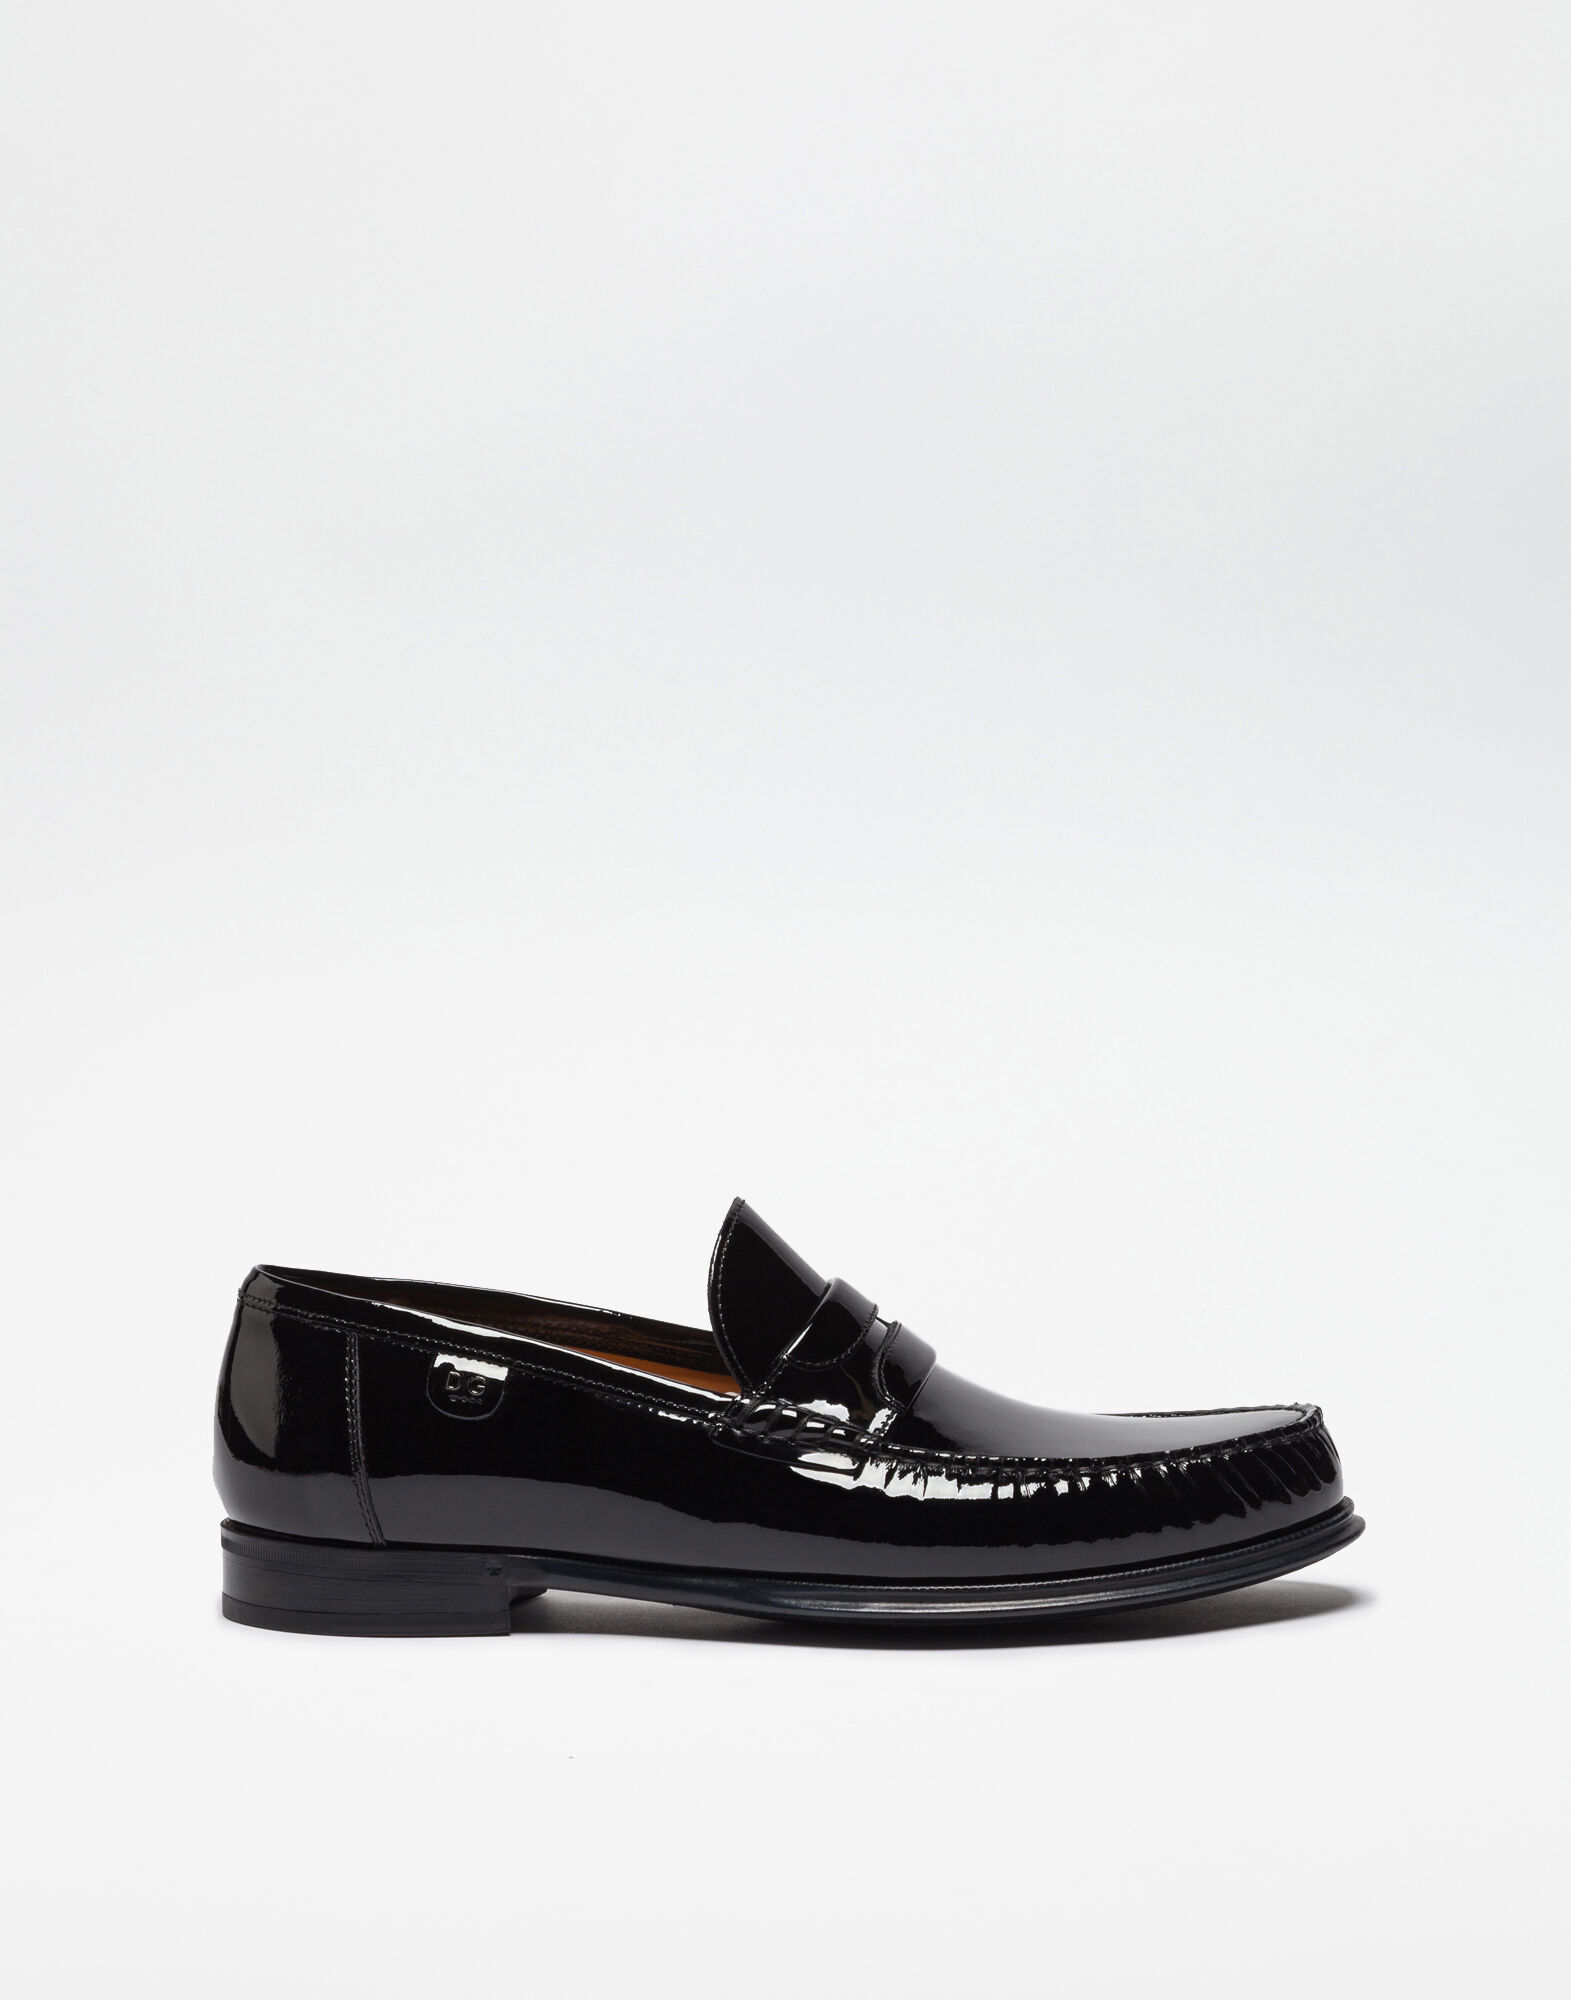 PATENT LEATHER MOCASSIN